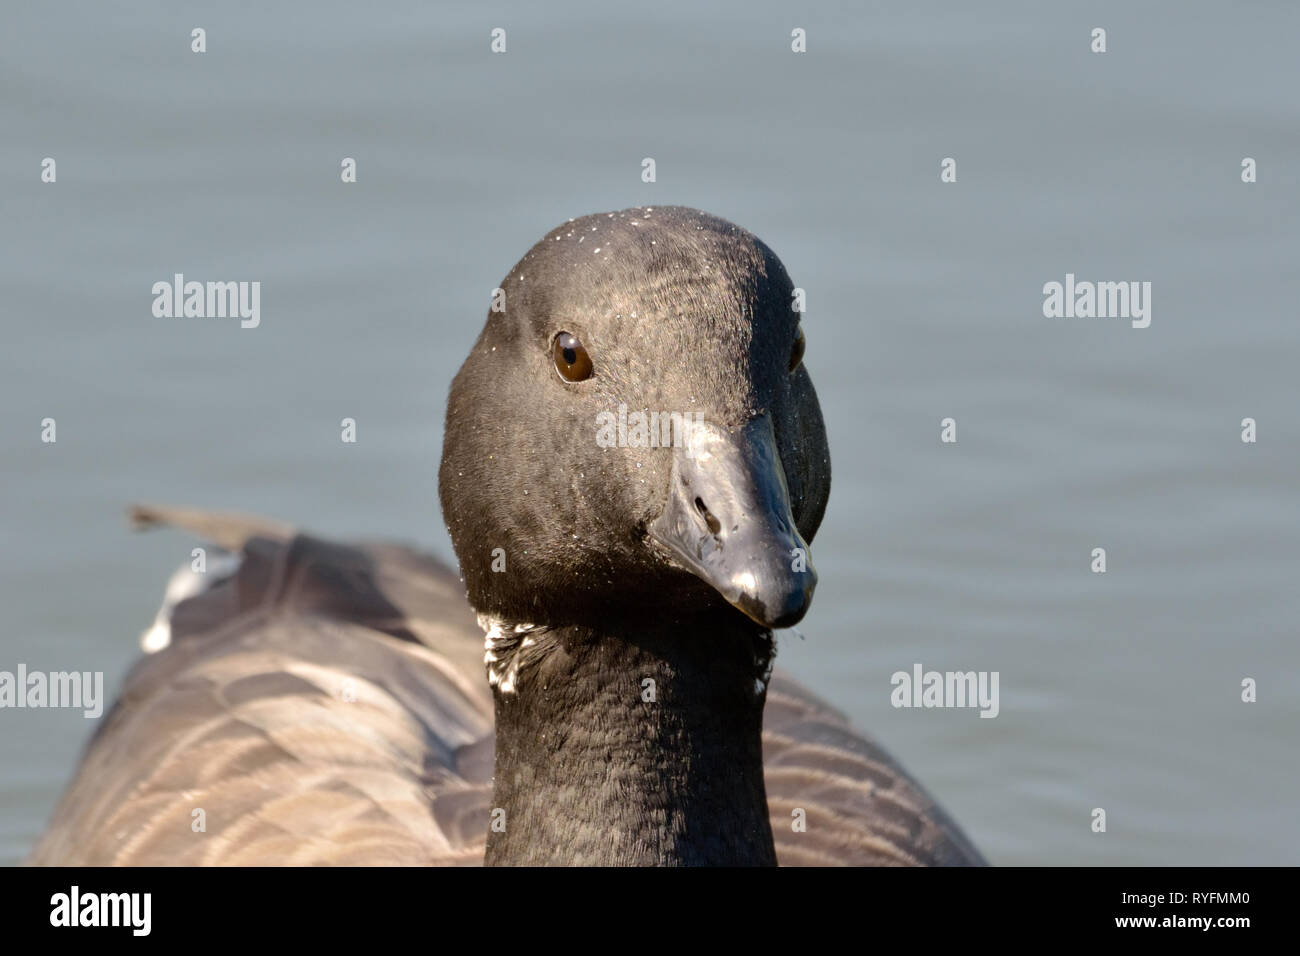 Brent goose swimming in pond.Brent goose portrait. - Stock Image